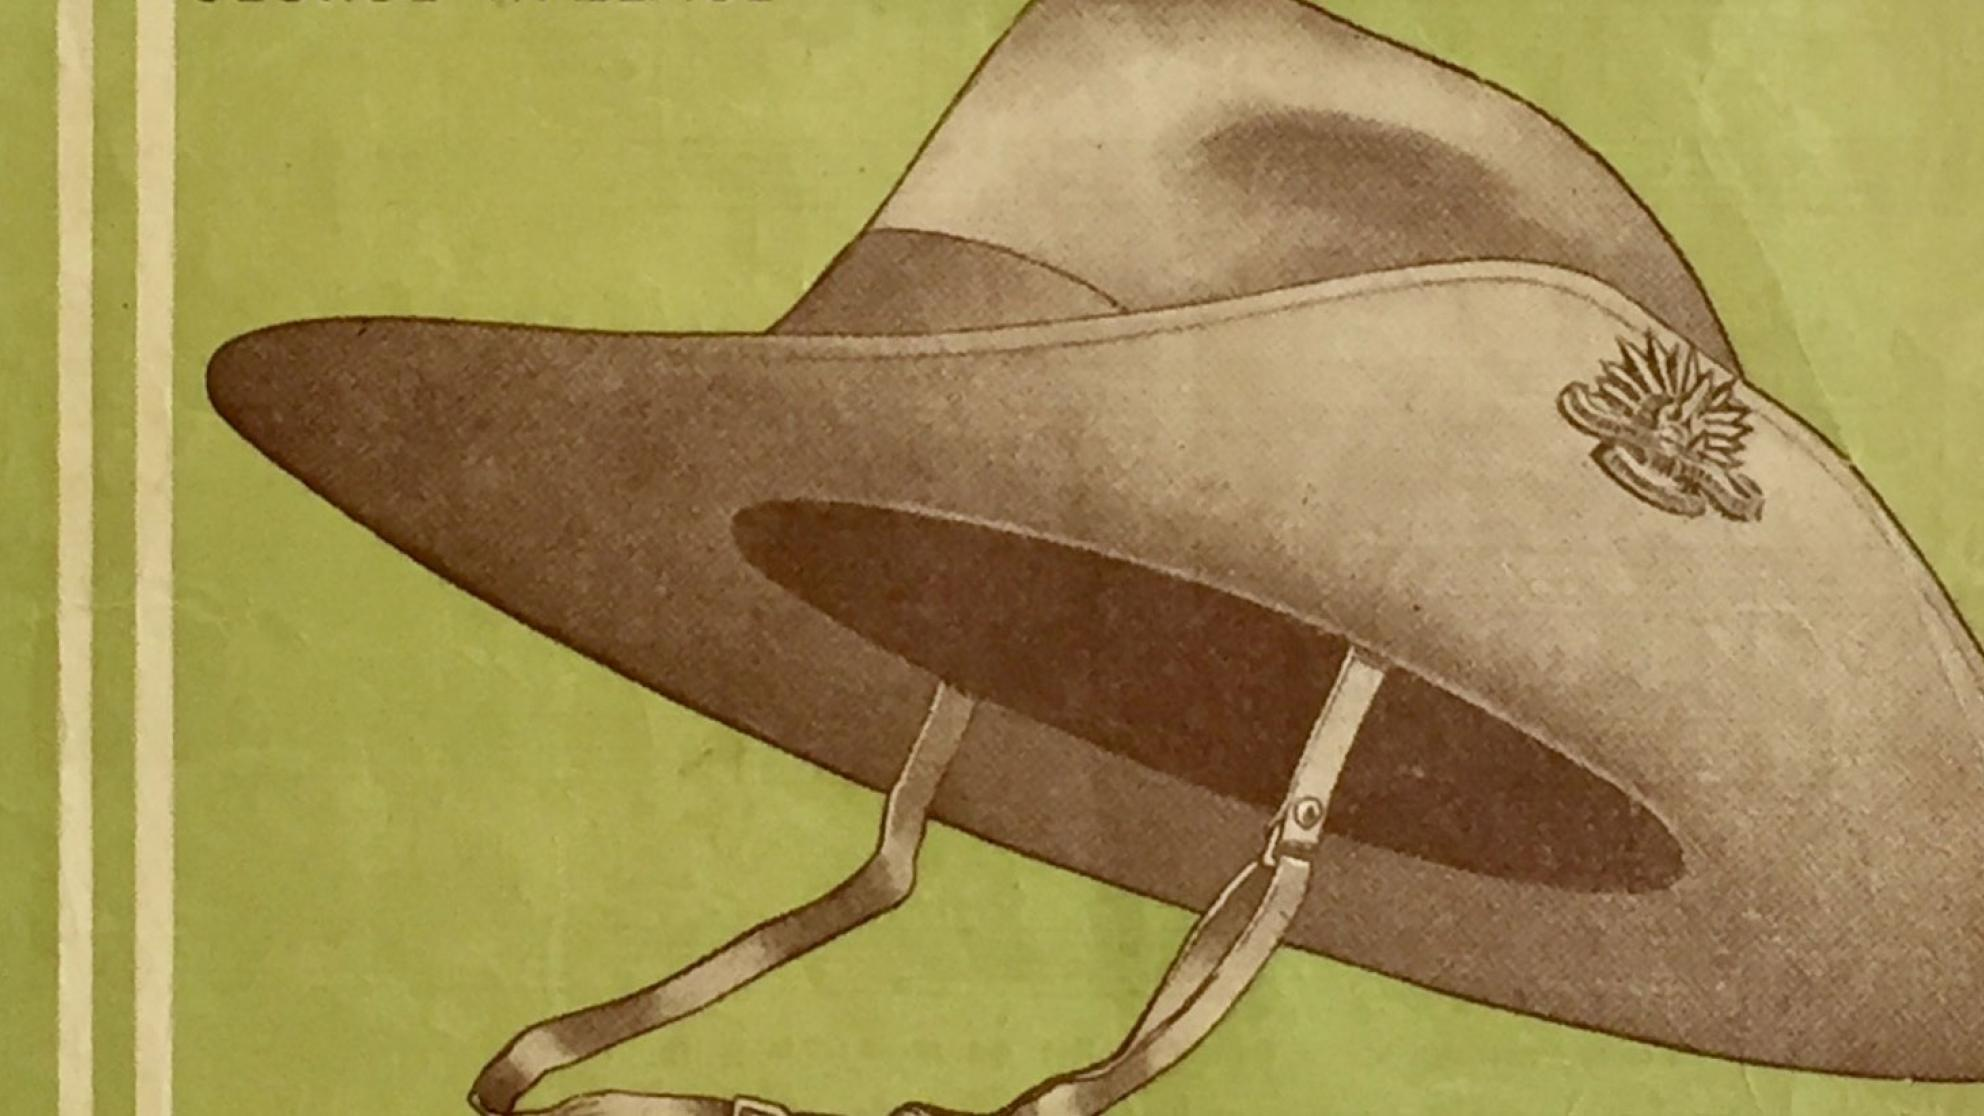 Illustration of an Australian army slouch hat on a yellow-green background.